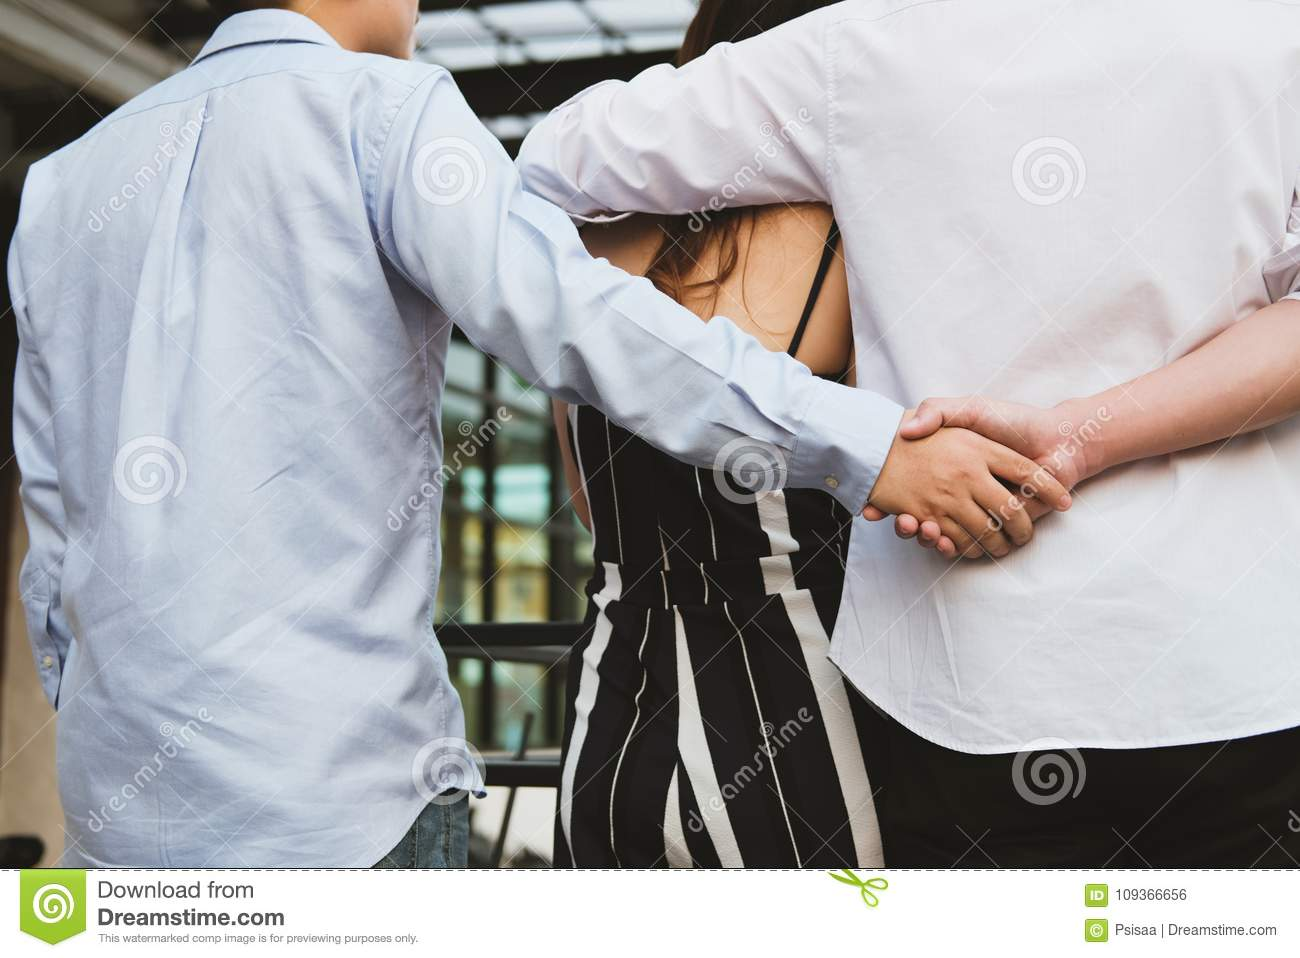 Is holding hands with another guy cheating